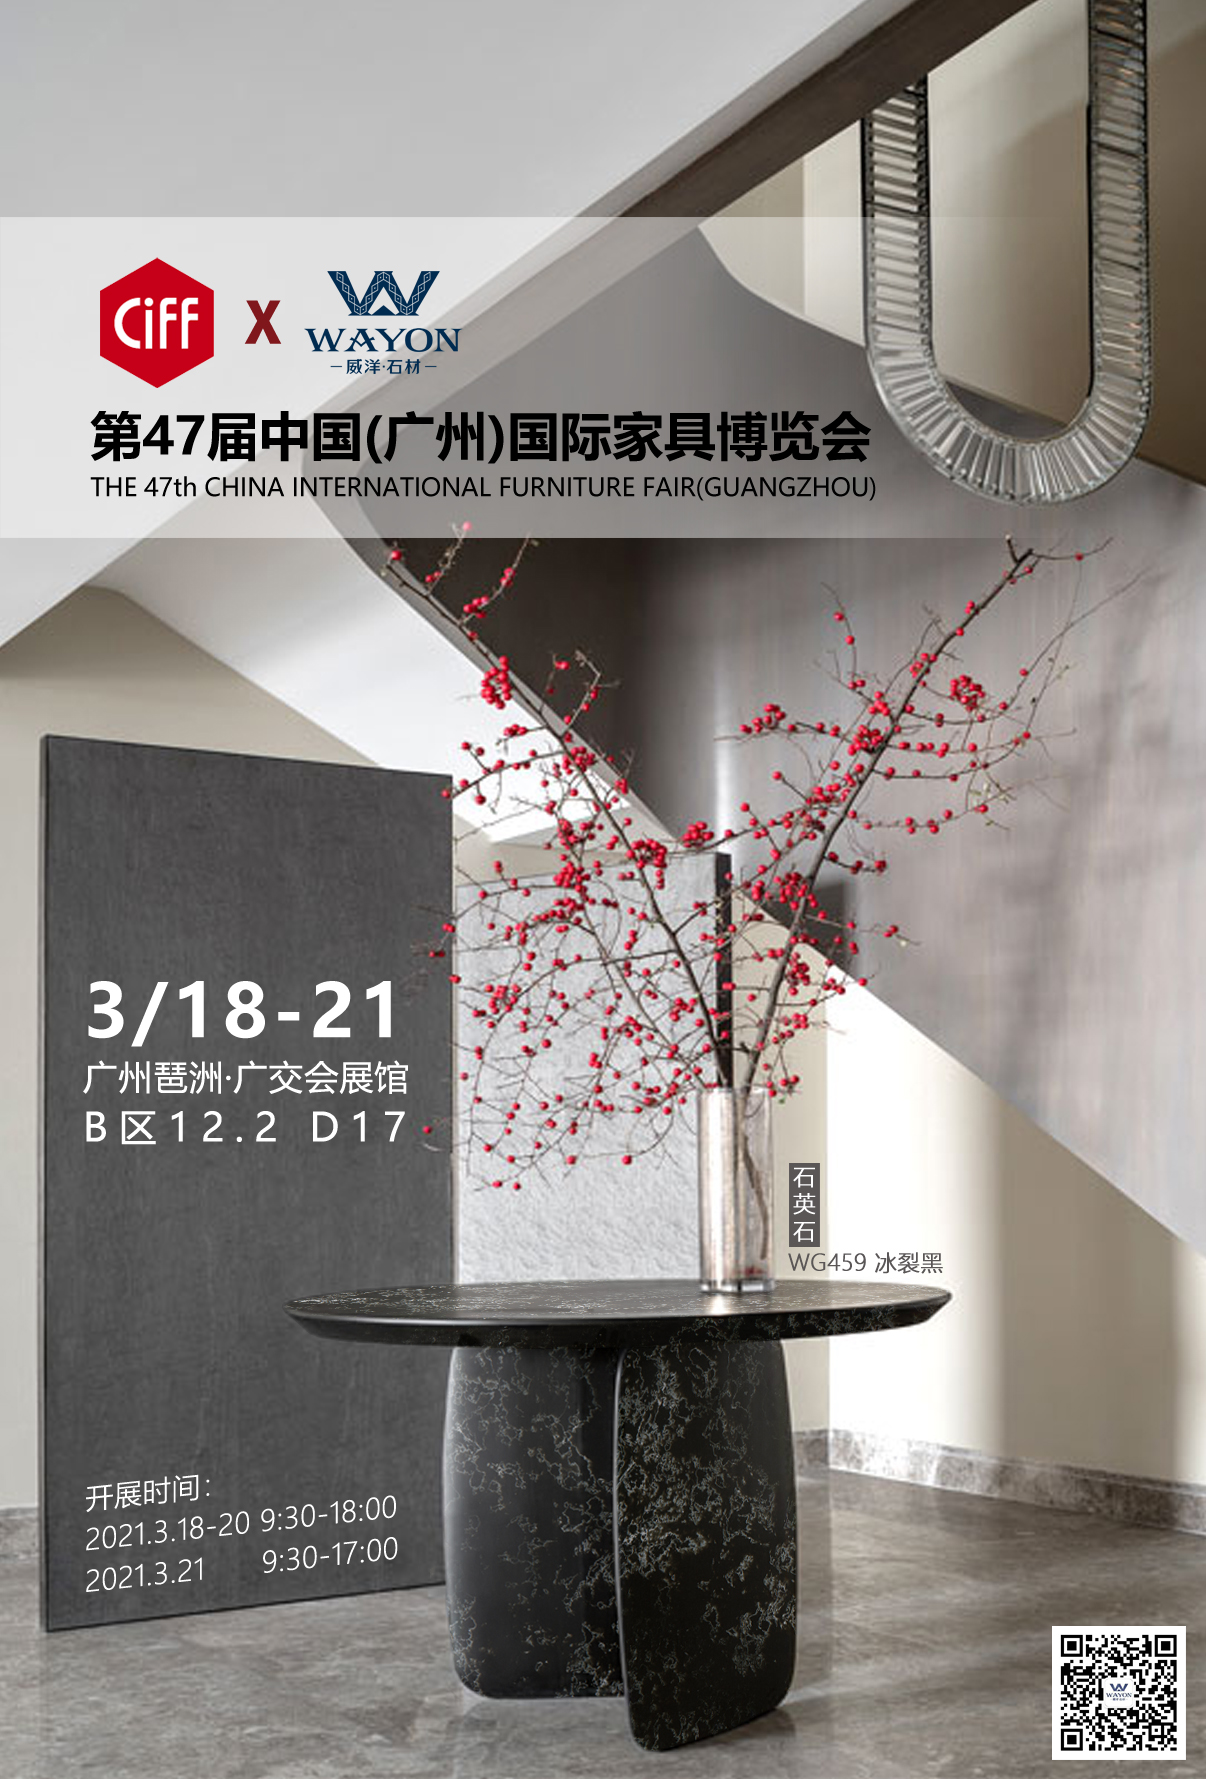 The 47th Guangzhou International Furniture Fair